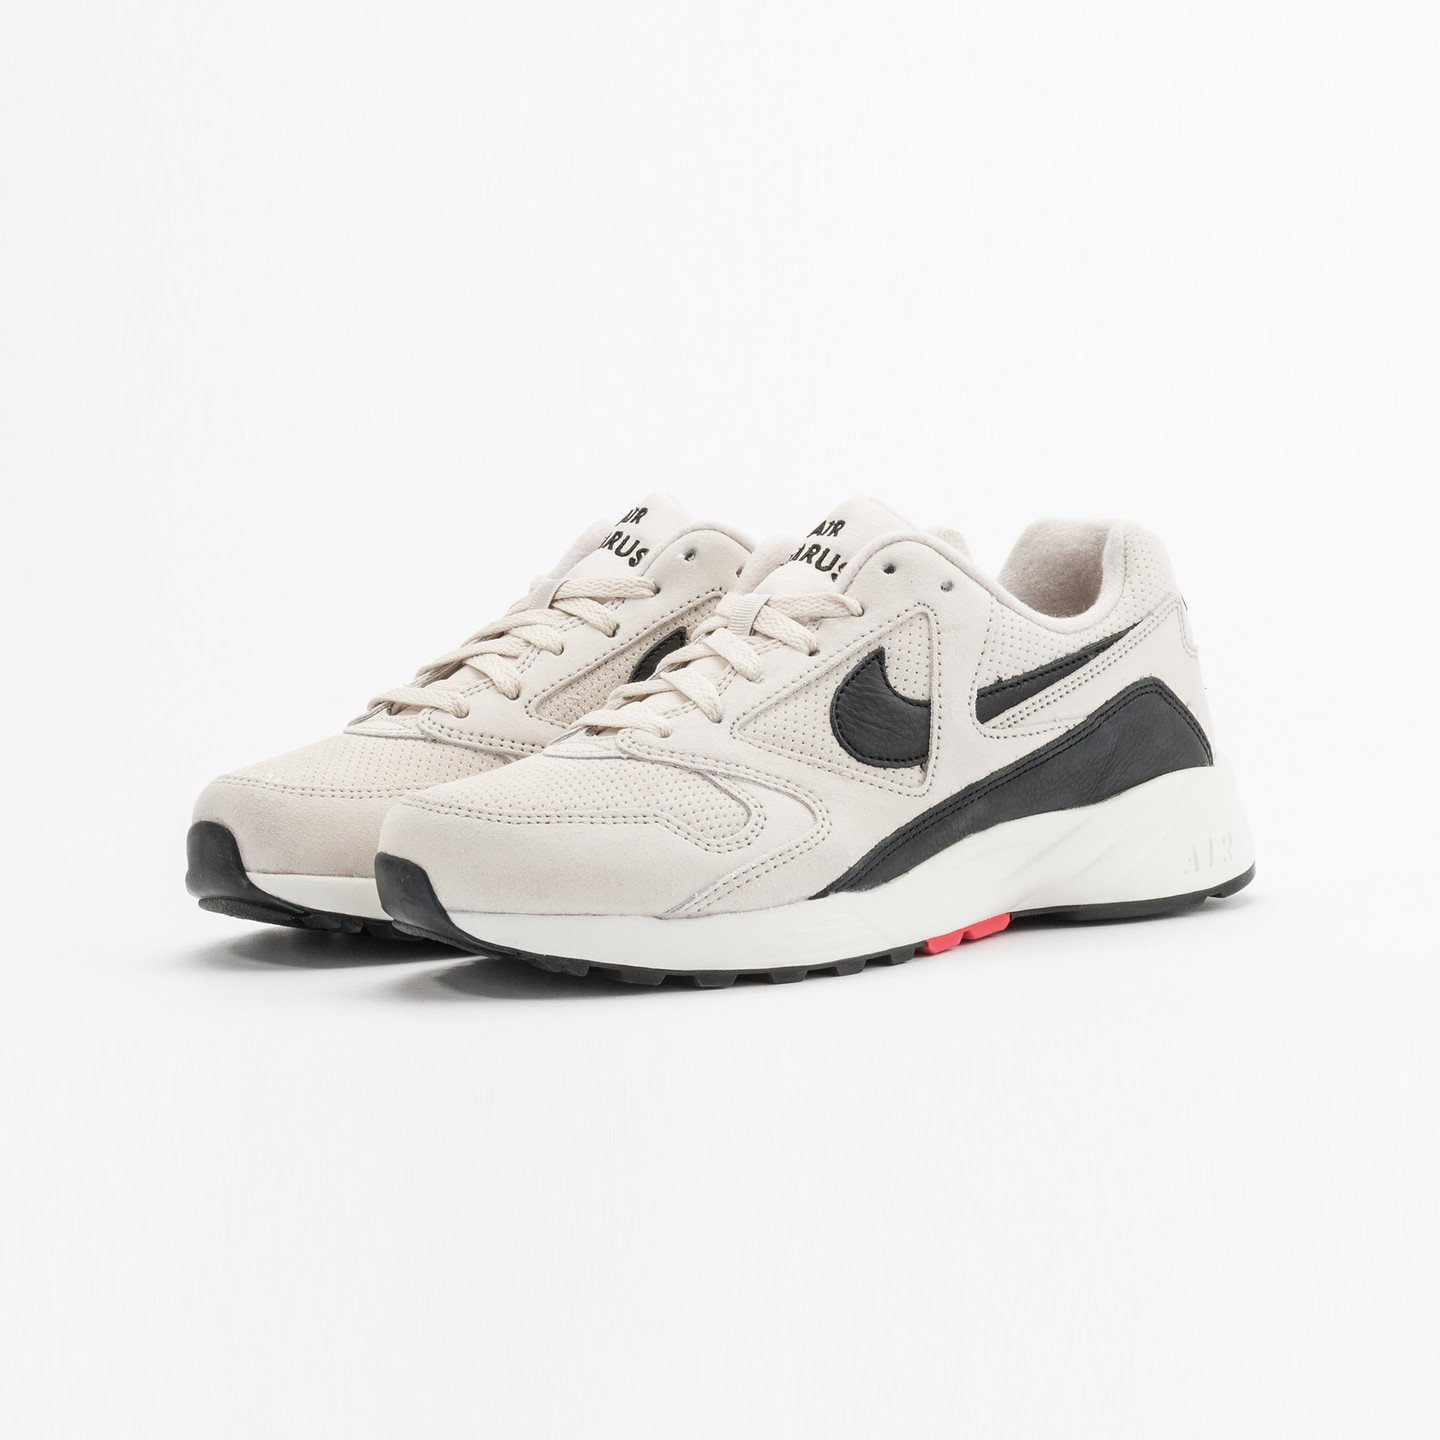 Nike Air Icarus Extra QS Sail / Black 882019-100-45